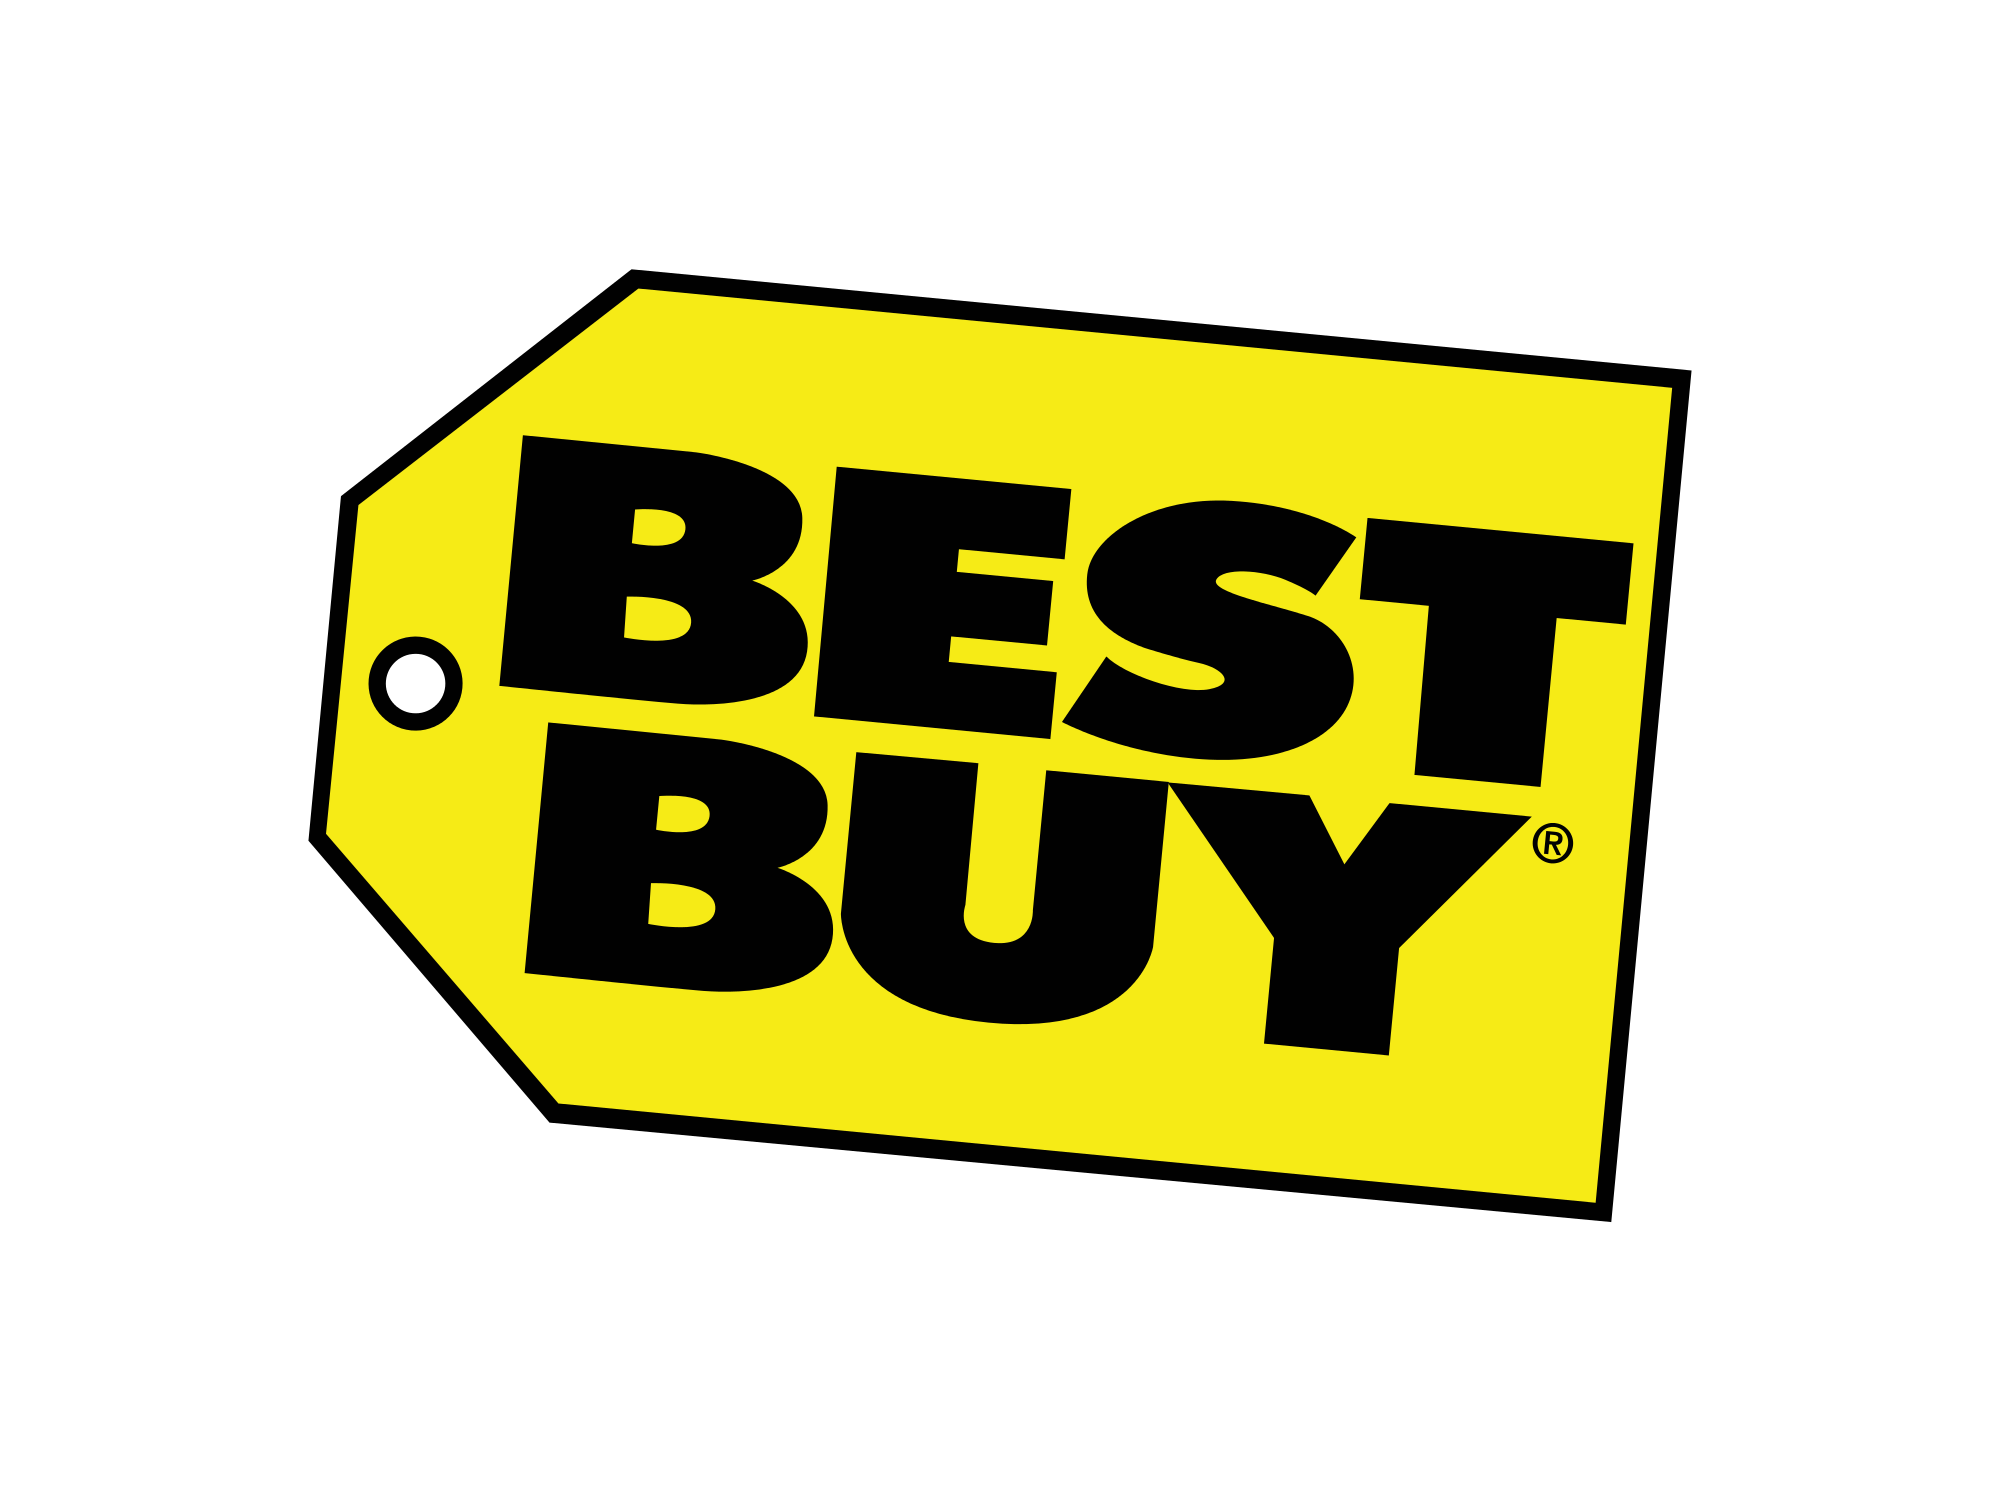 Bestbuy early access to BF deals tomorrow - 20 deals - for everyone